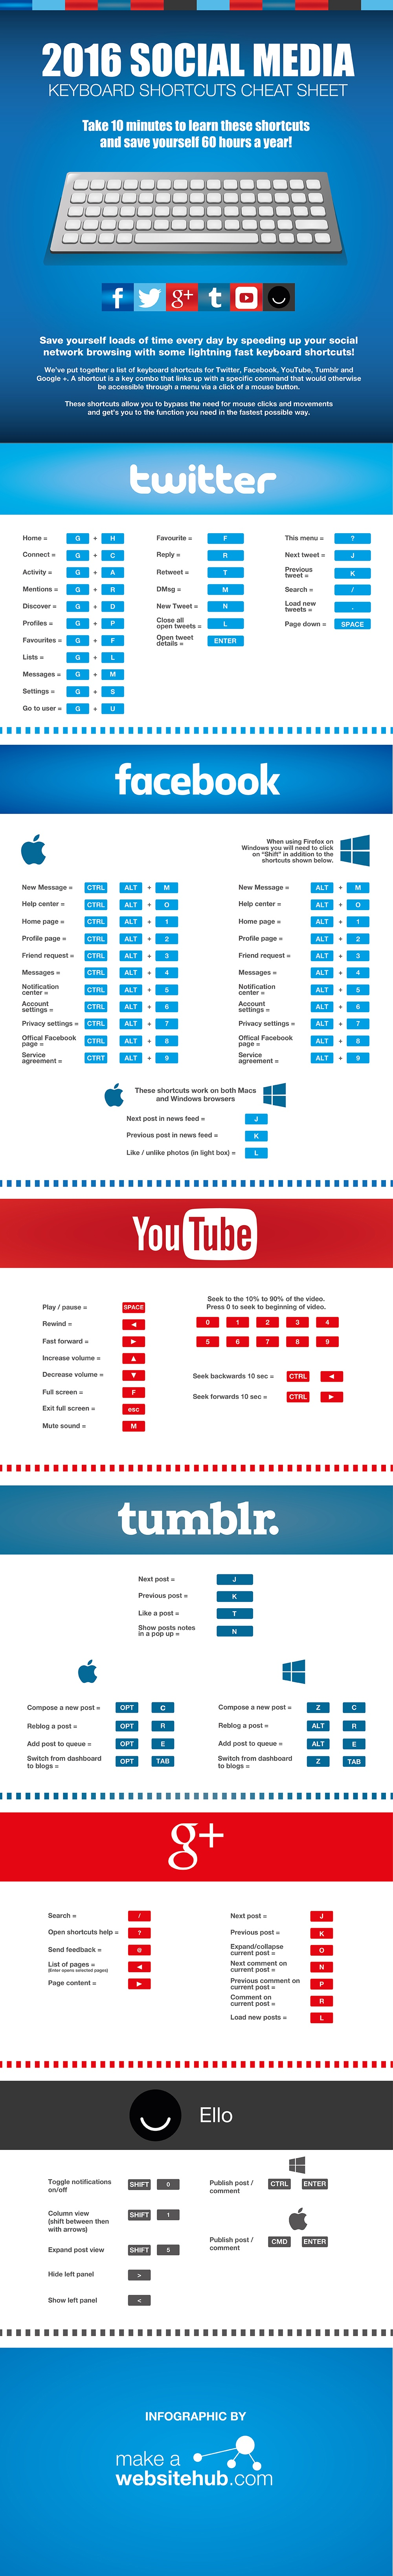 social-media-shortcuts-2016-infographic.jpg